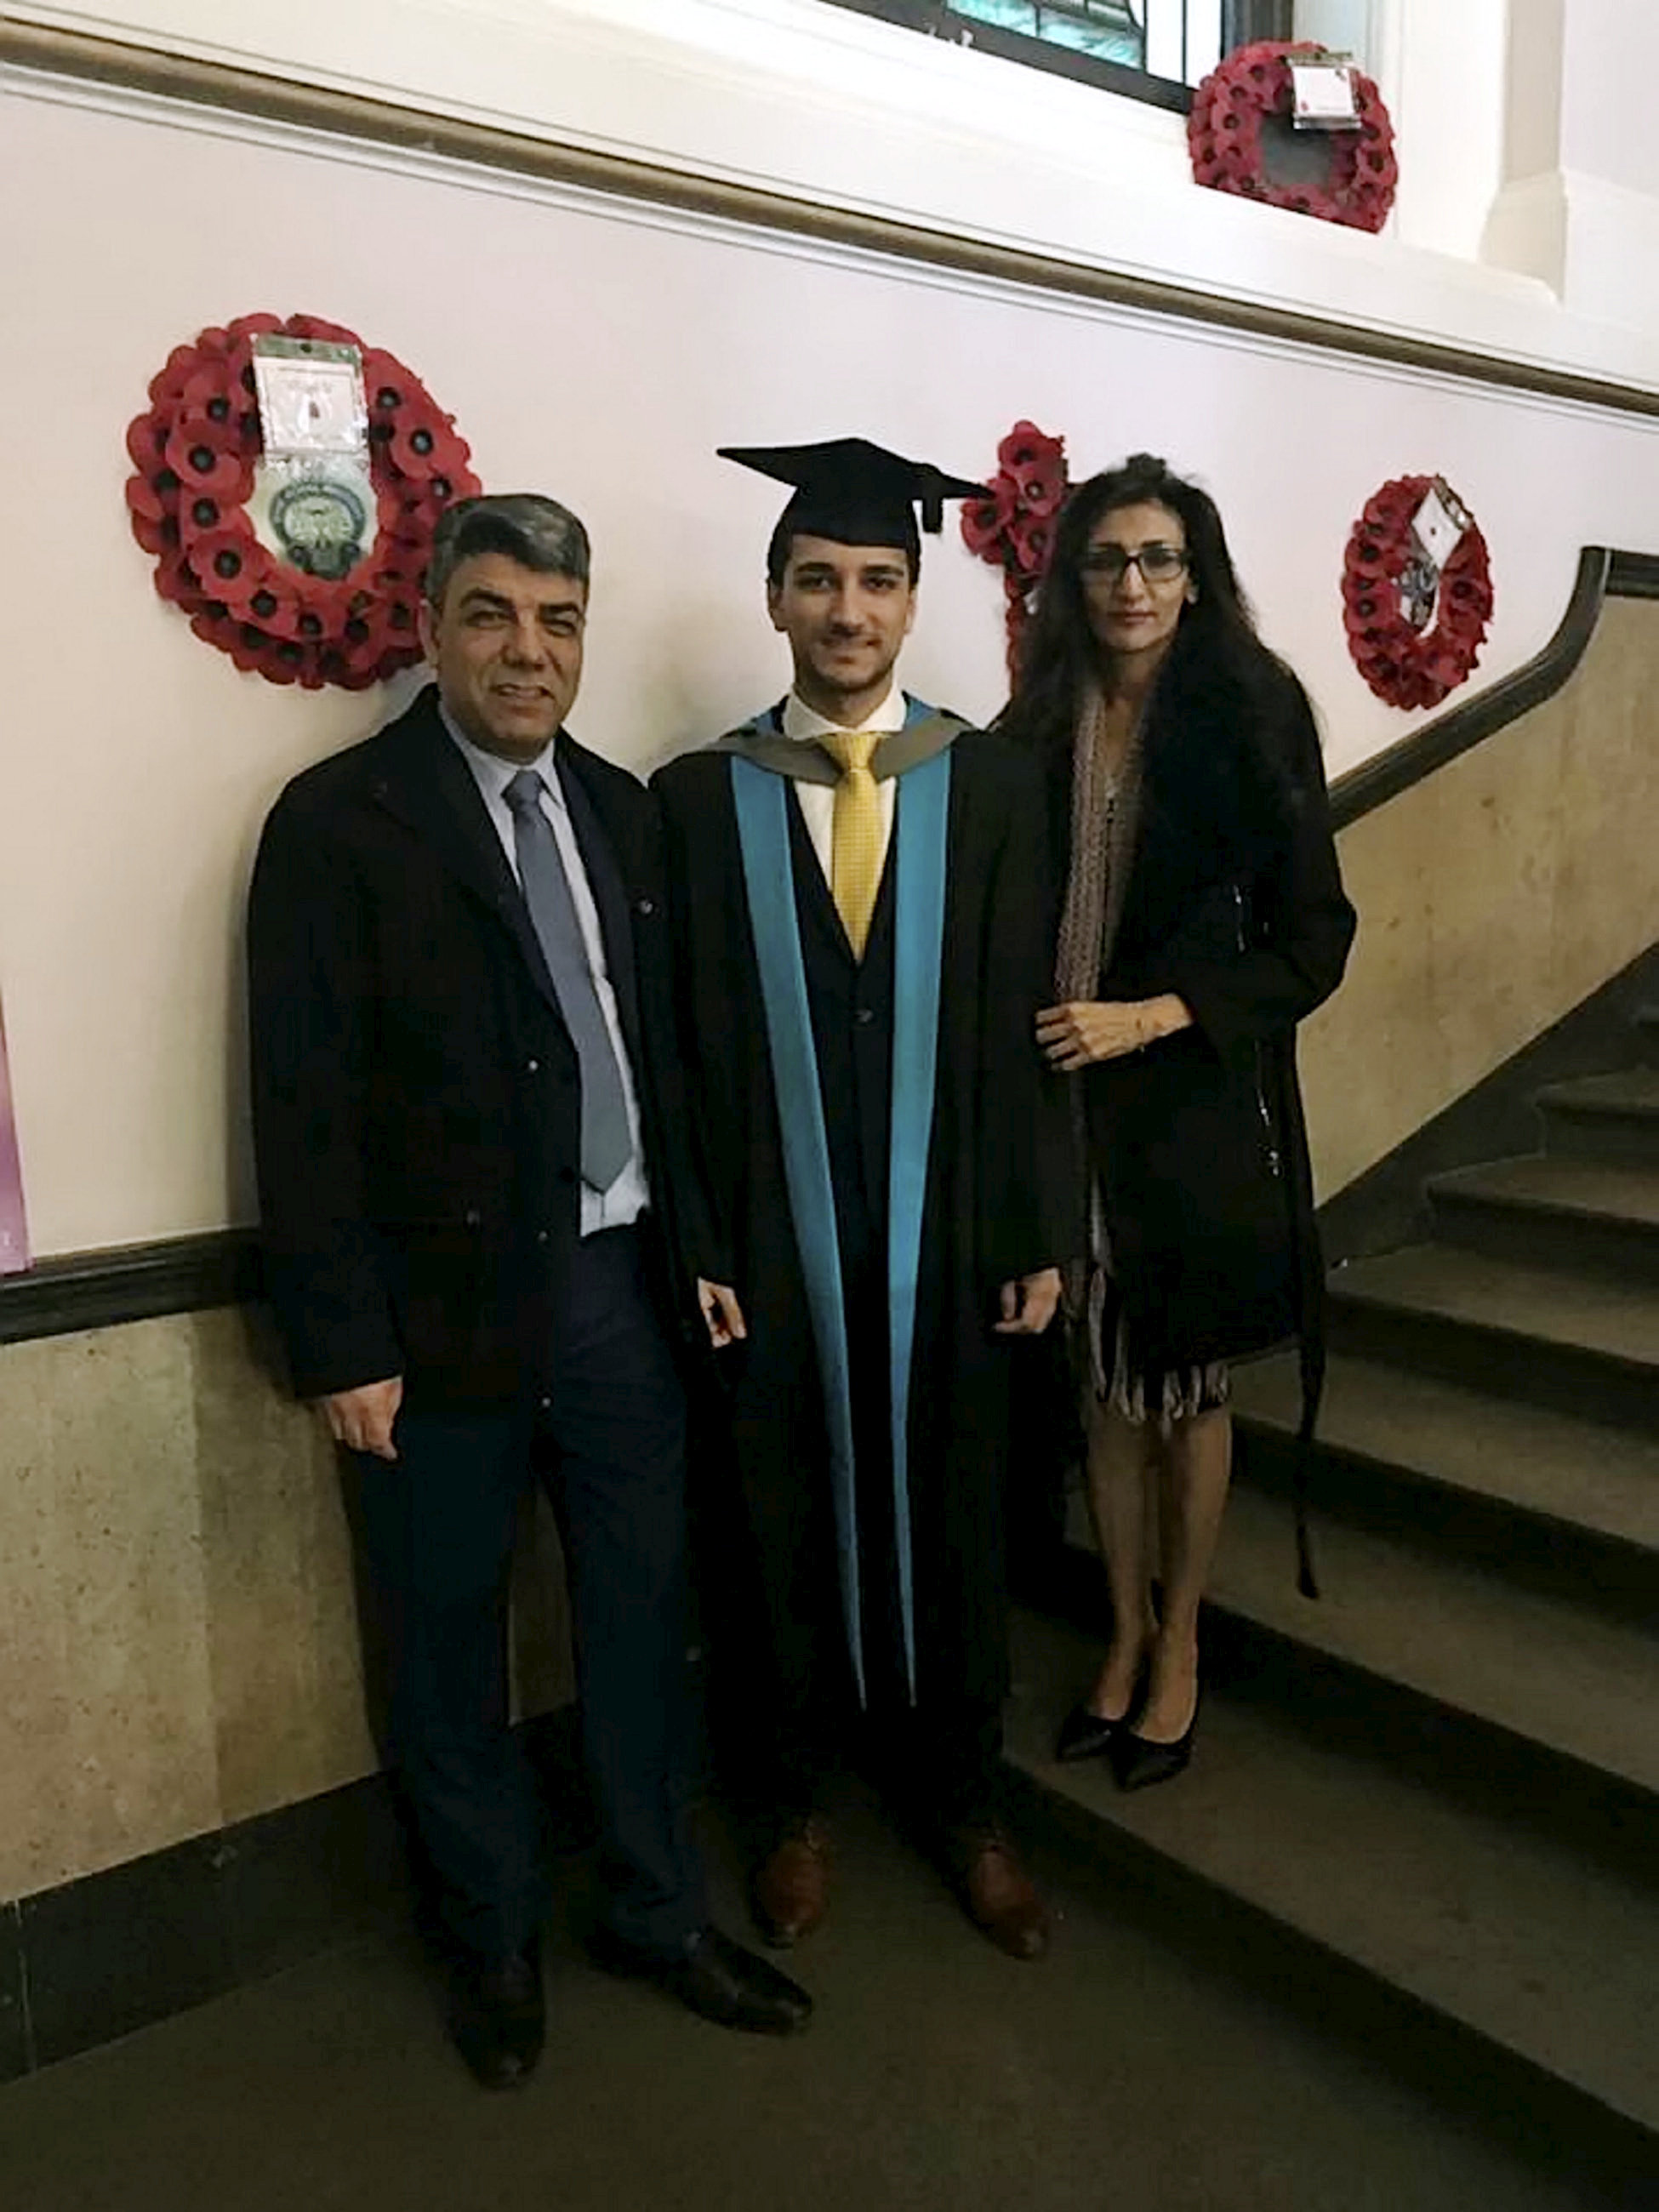 Hero Son Carried Disabled Mum Down 24 Flights Of Stairs To Escape Grenfell Fire SWNS NEDA GRENFELL 05